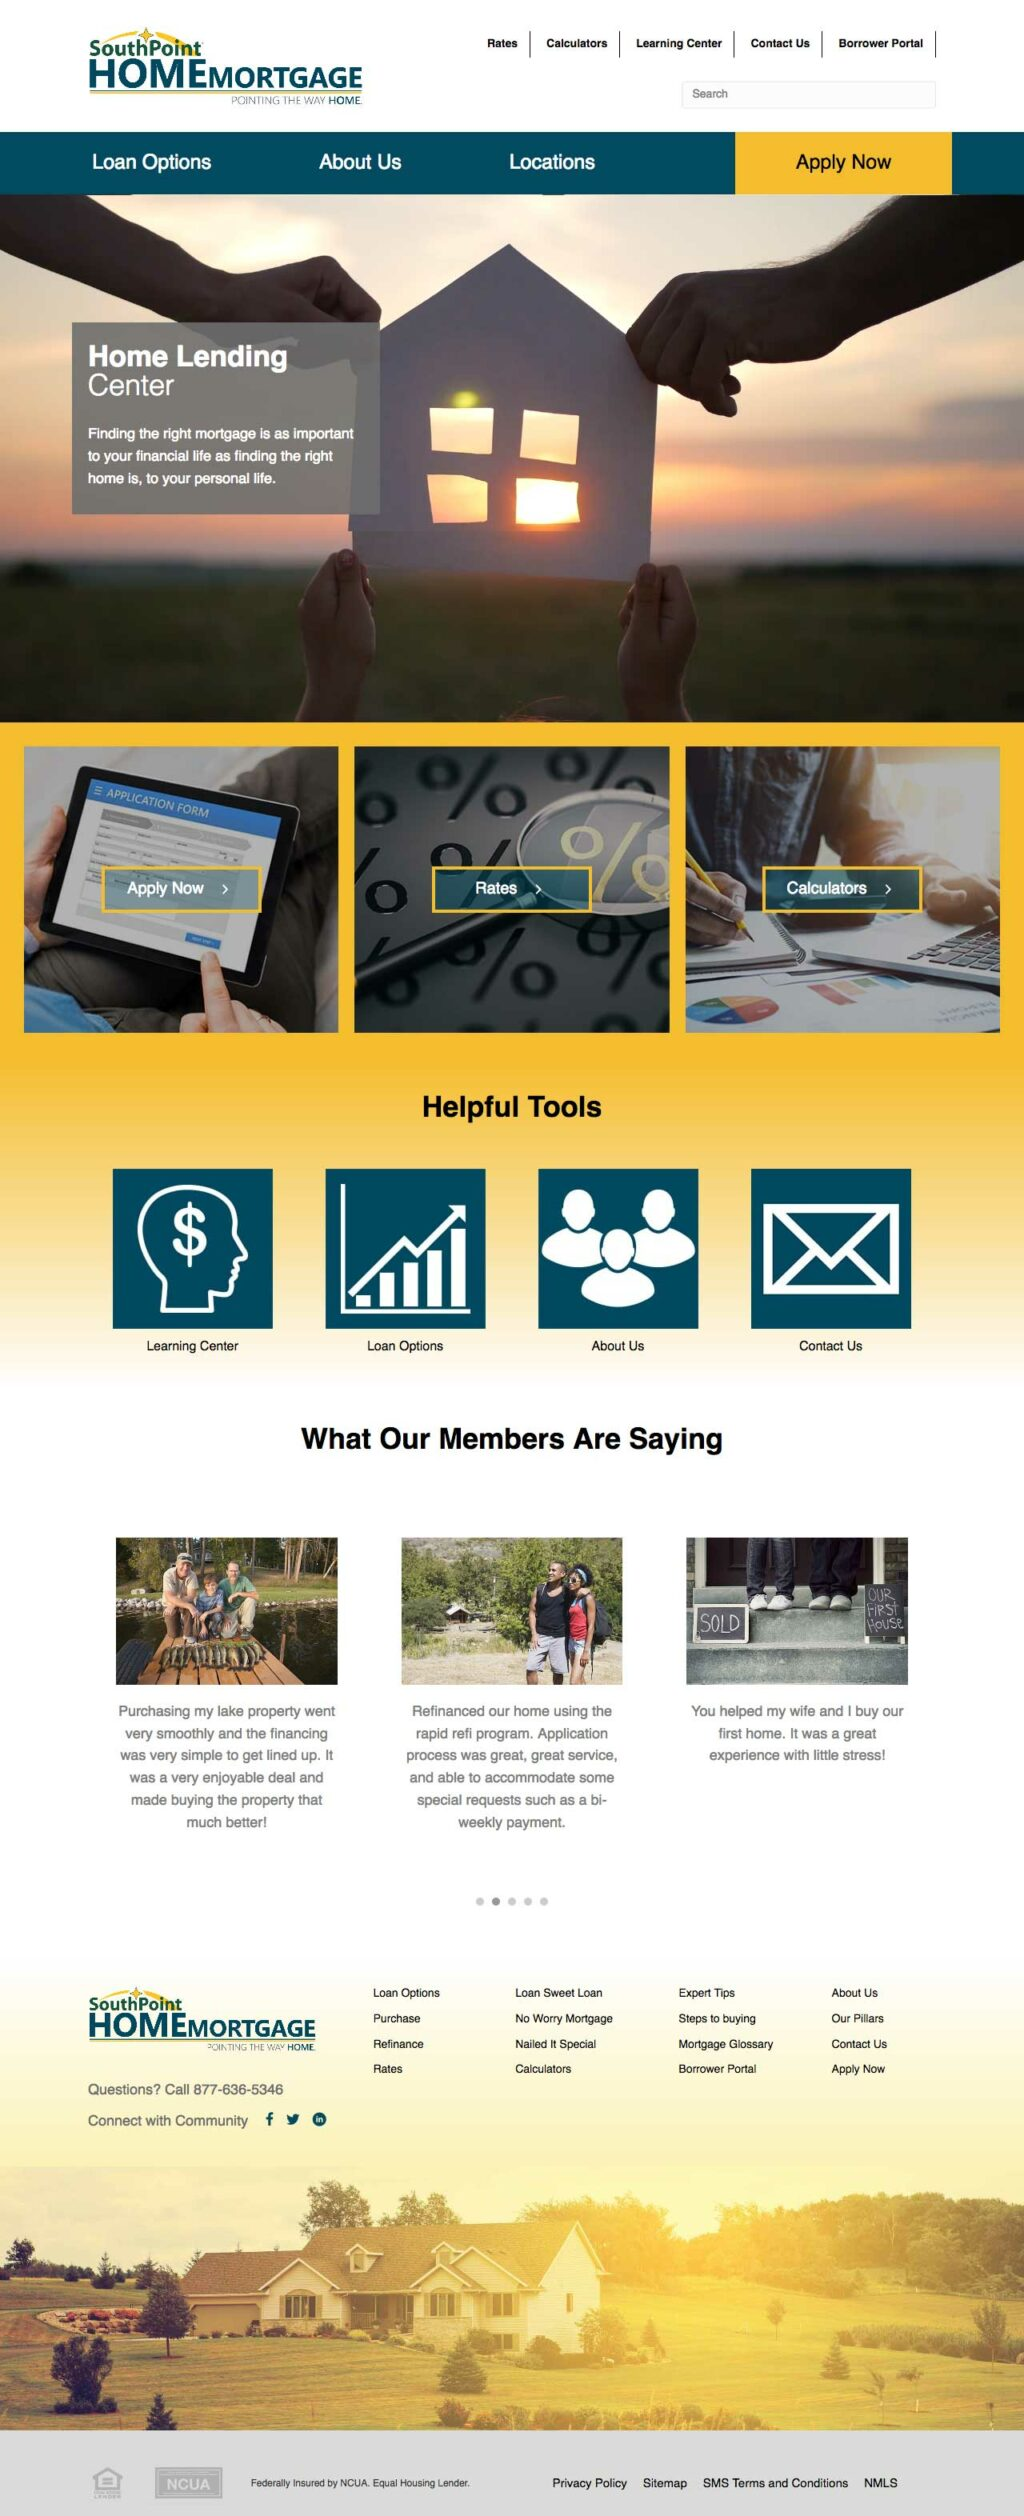 Southpoint Home Mortgage Website Design